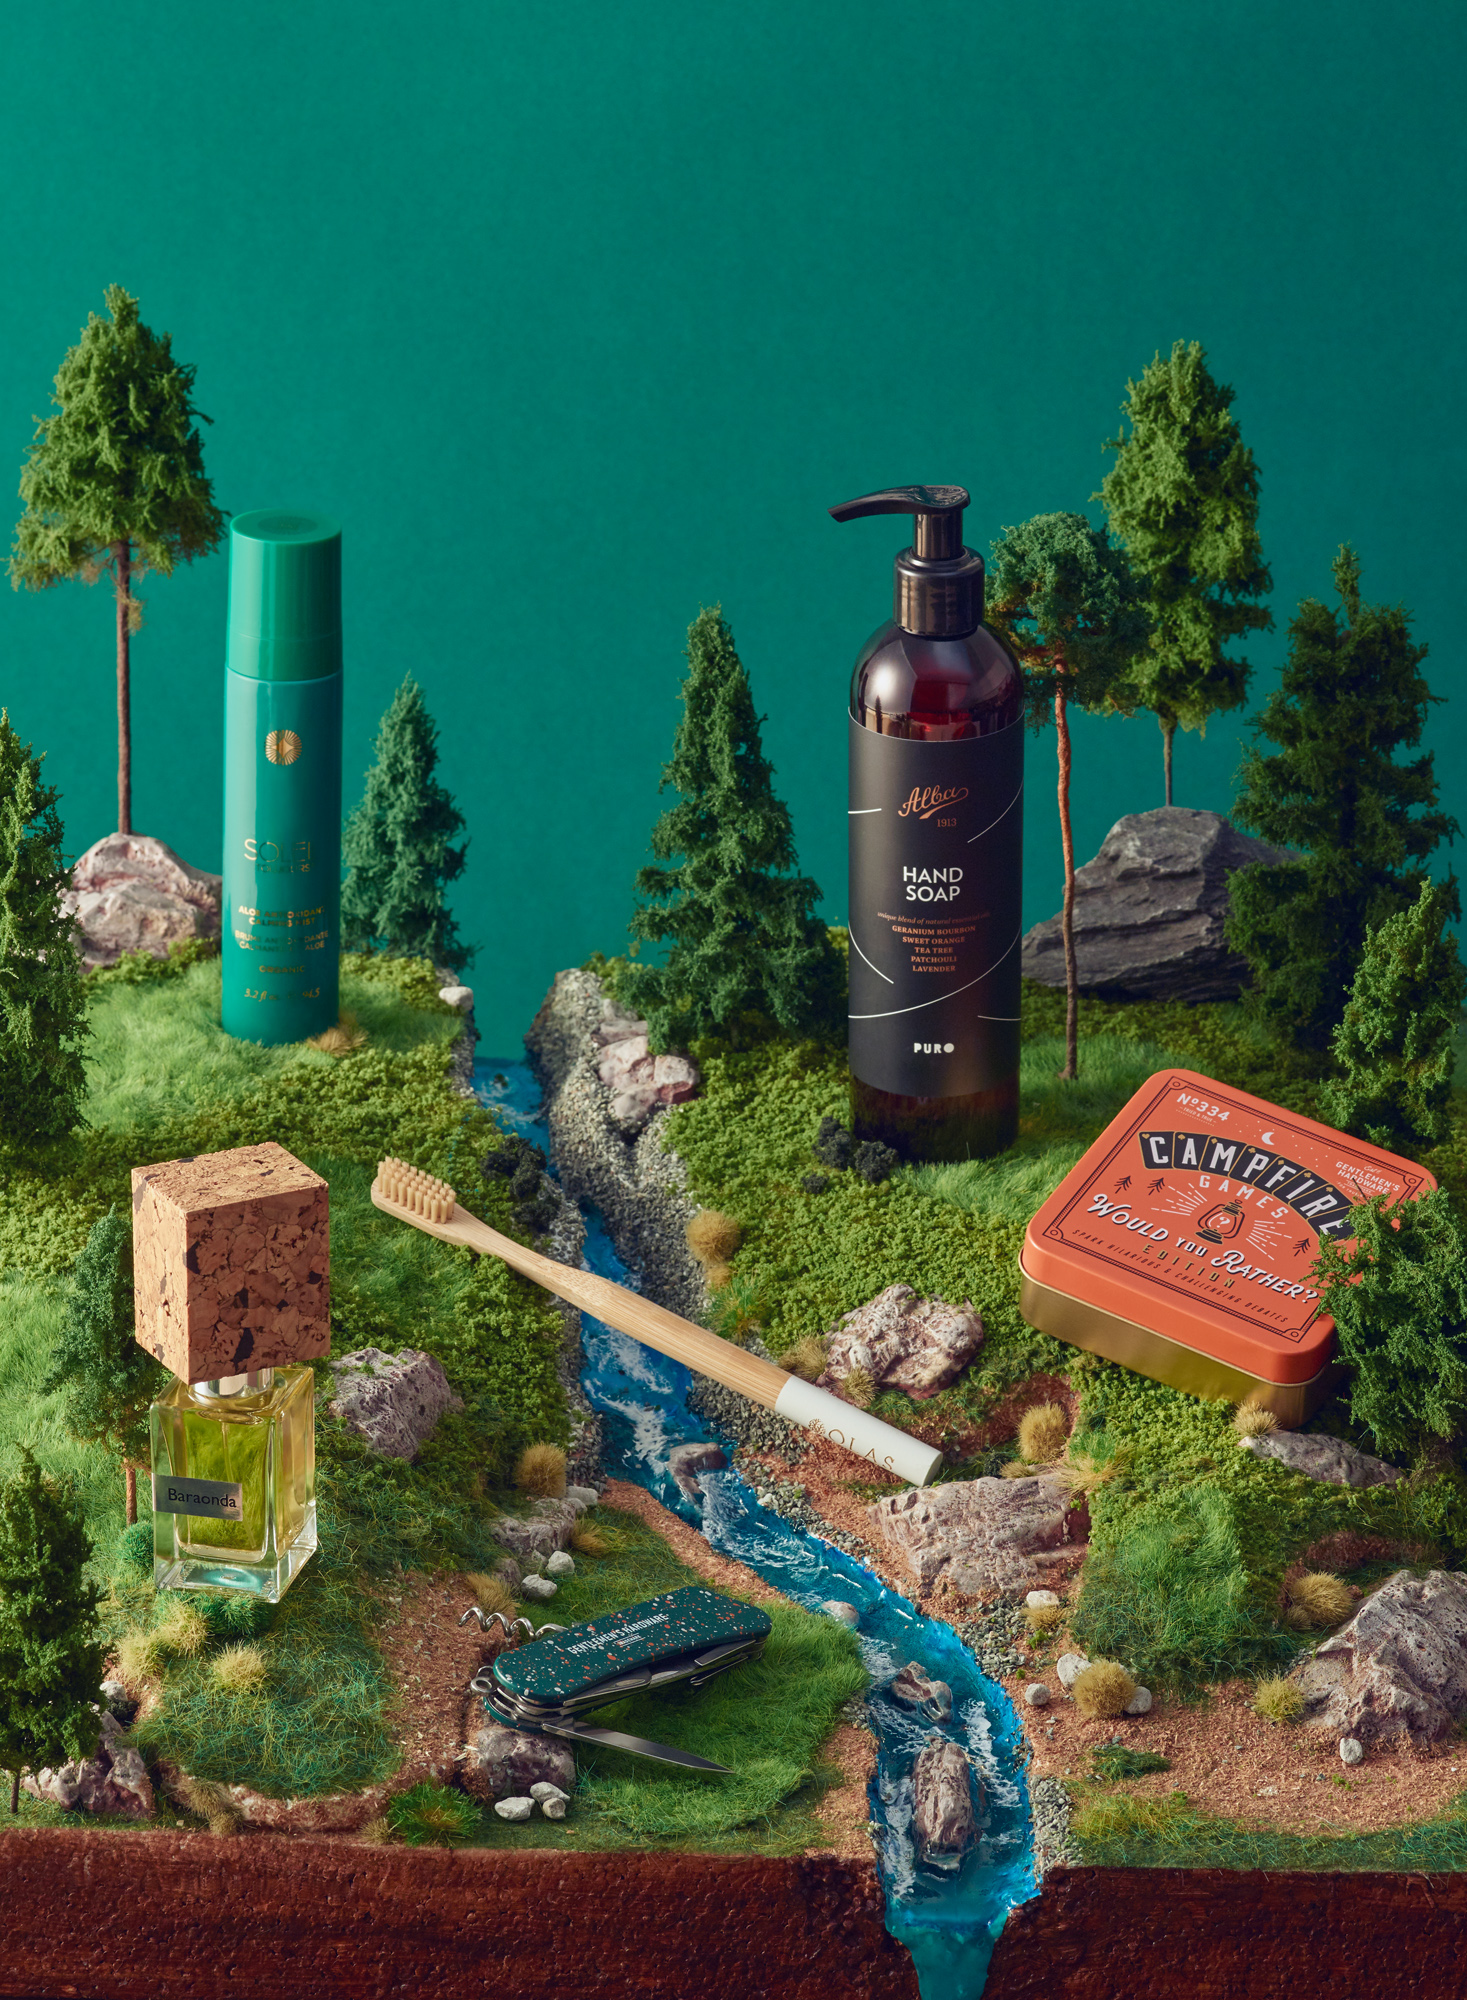 Still life photograph on diorama with comestics, toothbrush, perfume, Campfire Games. Usta Magazine Travel Issue